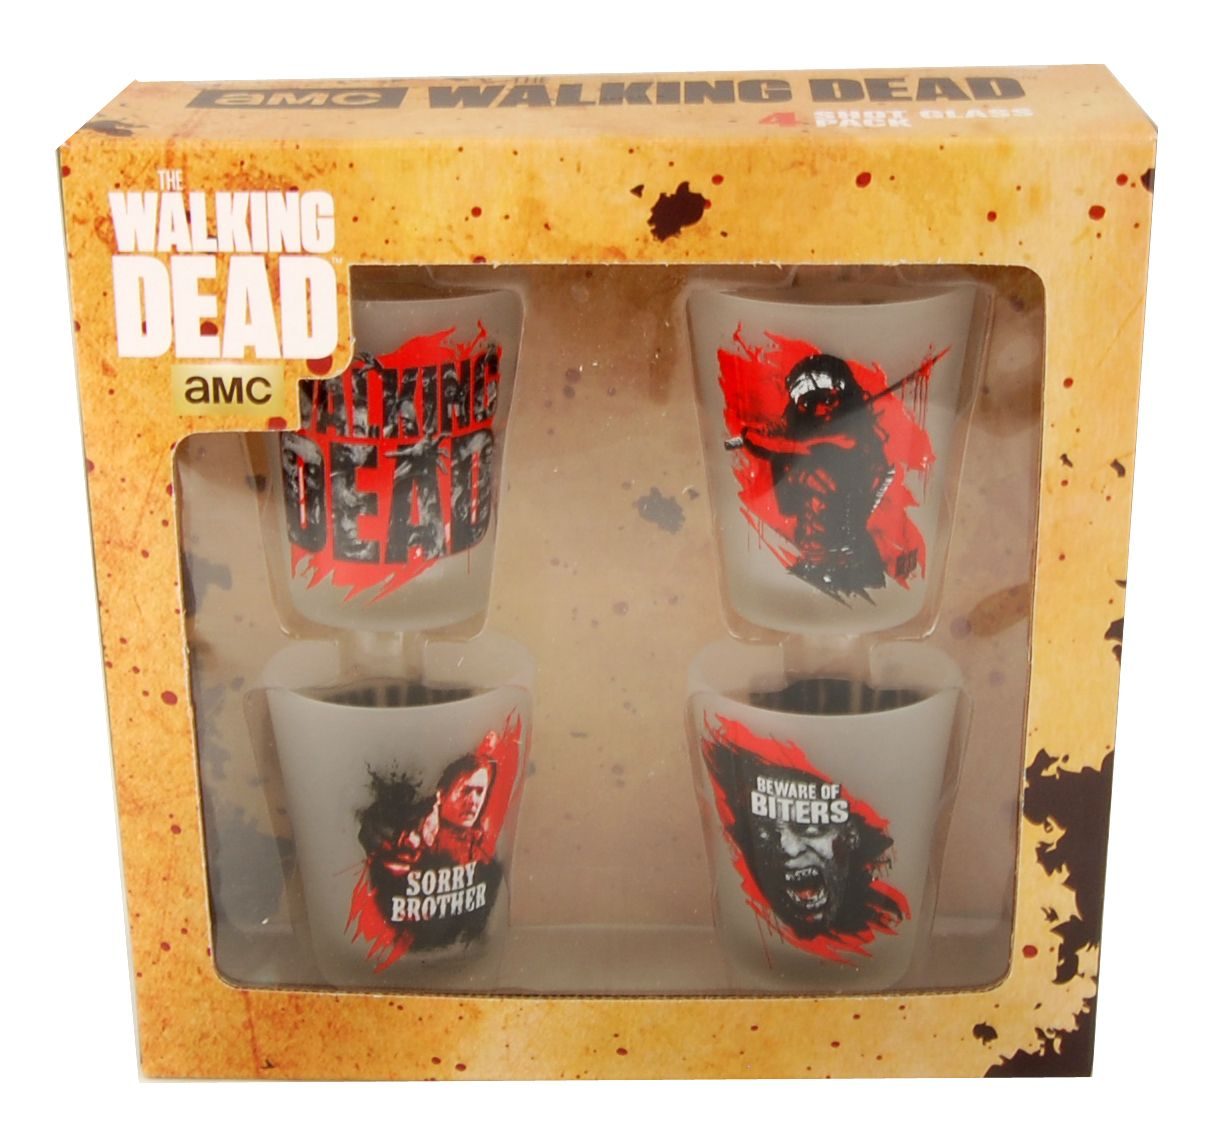 Amplify your desire to come home, unwind, drink alcohol, and watch The Walking Dead with our featured Walking Dead shot glasses!  We also have The Walking Dead costumes and toys available.  galaxorstore.com